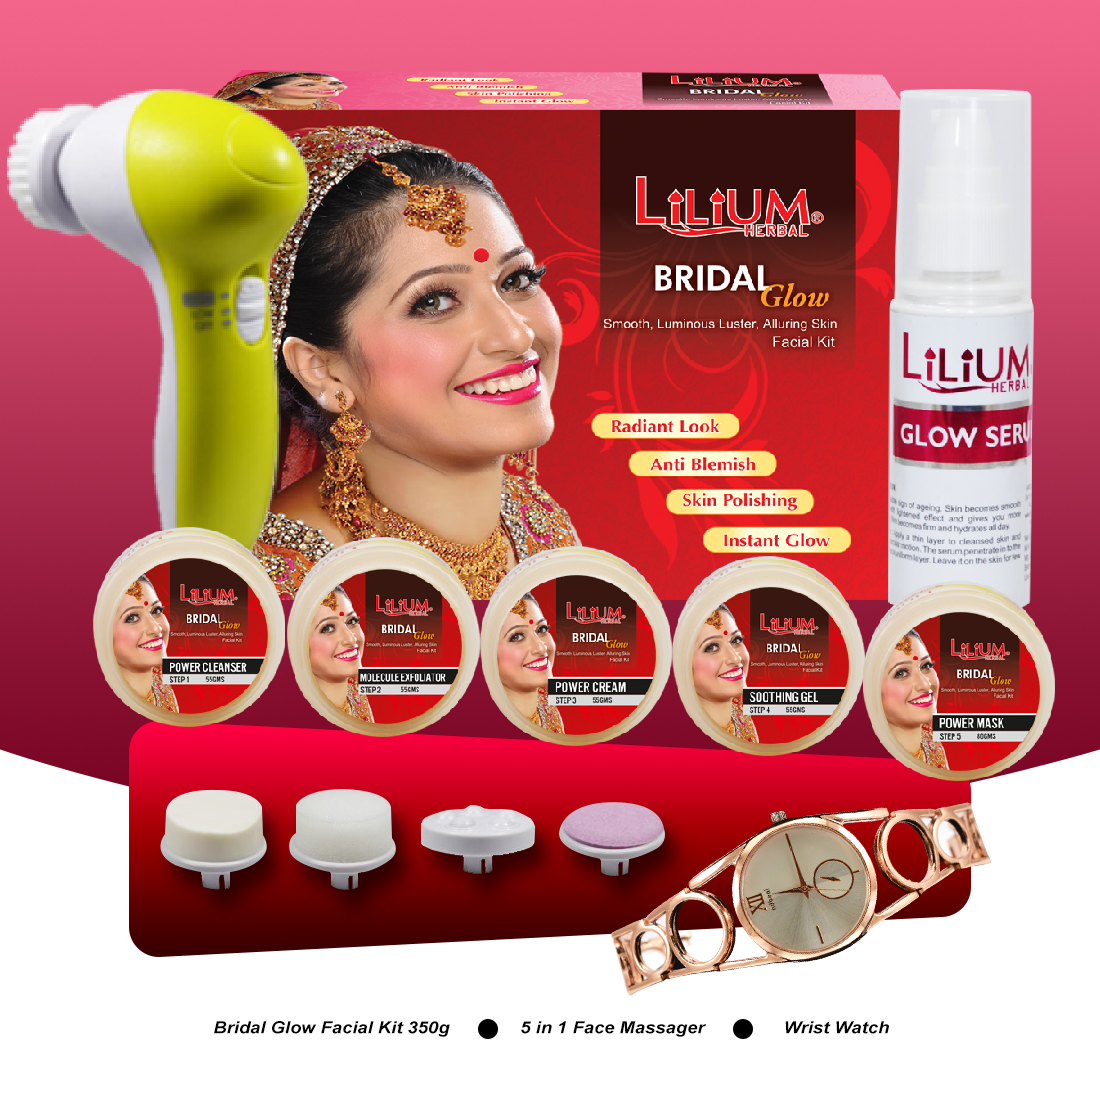 Lilium Bridel Glow Facial Kit 350gm With 5in1 Face Massager & Wrist Watch Pack of 3